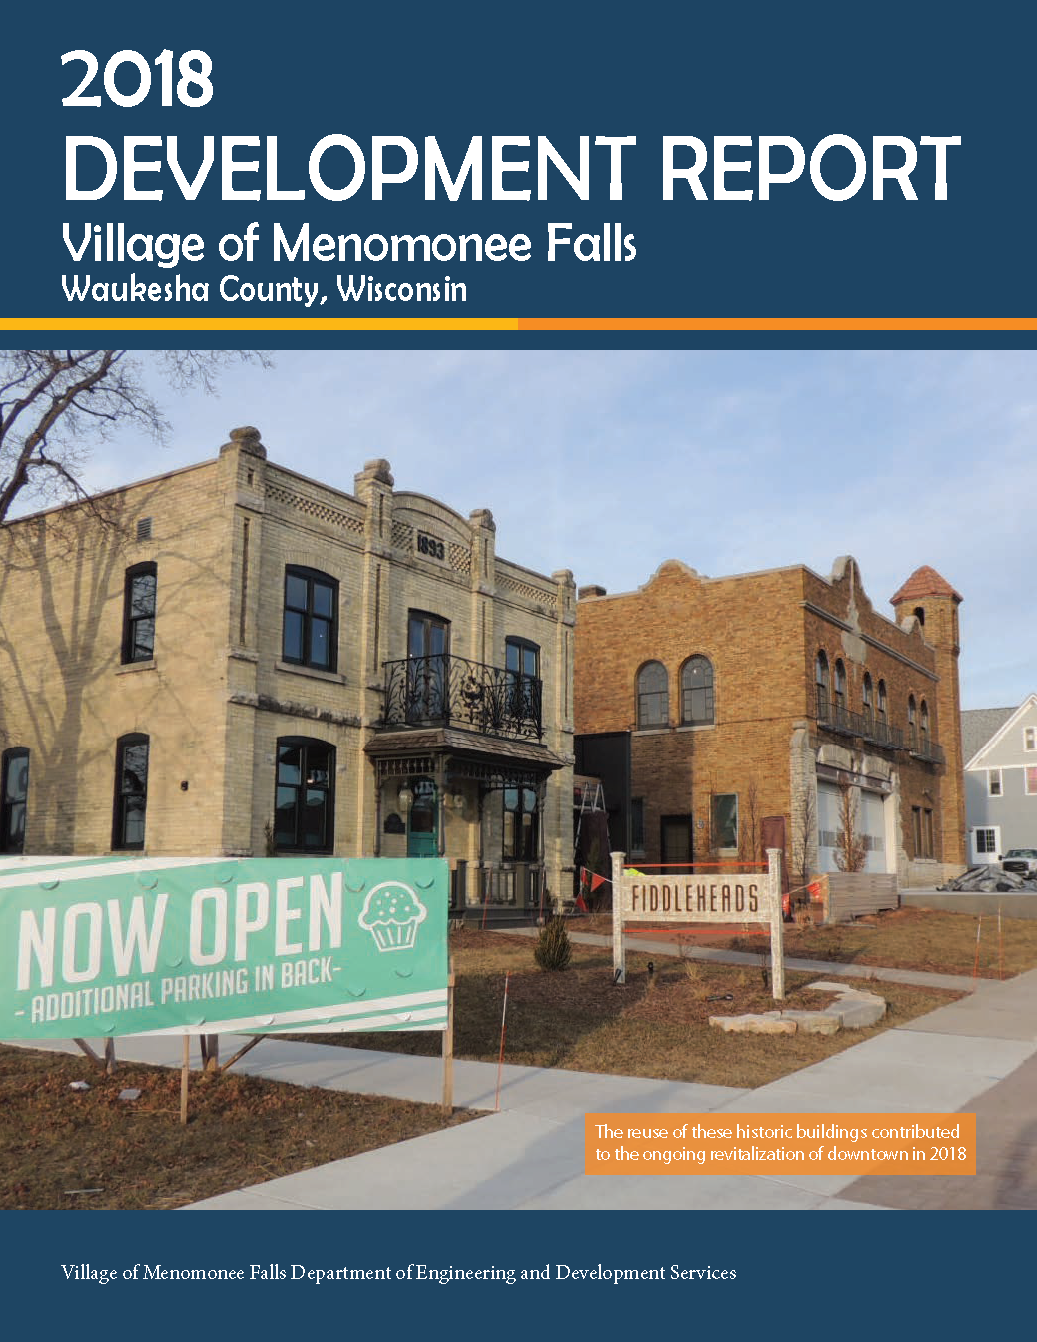 2018 Development Report Cover